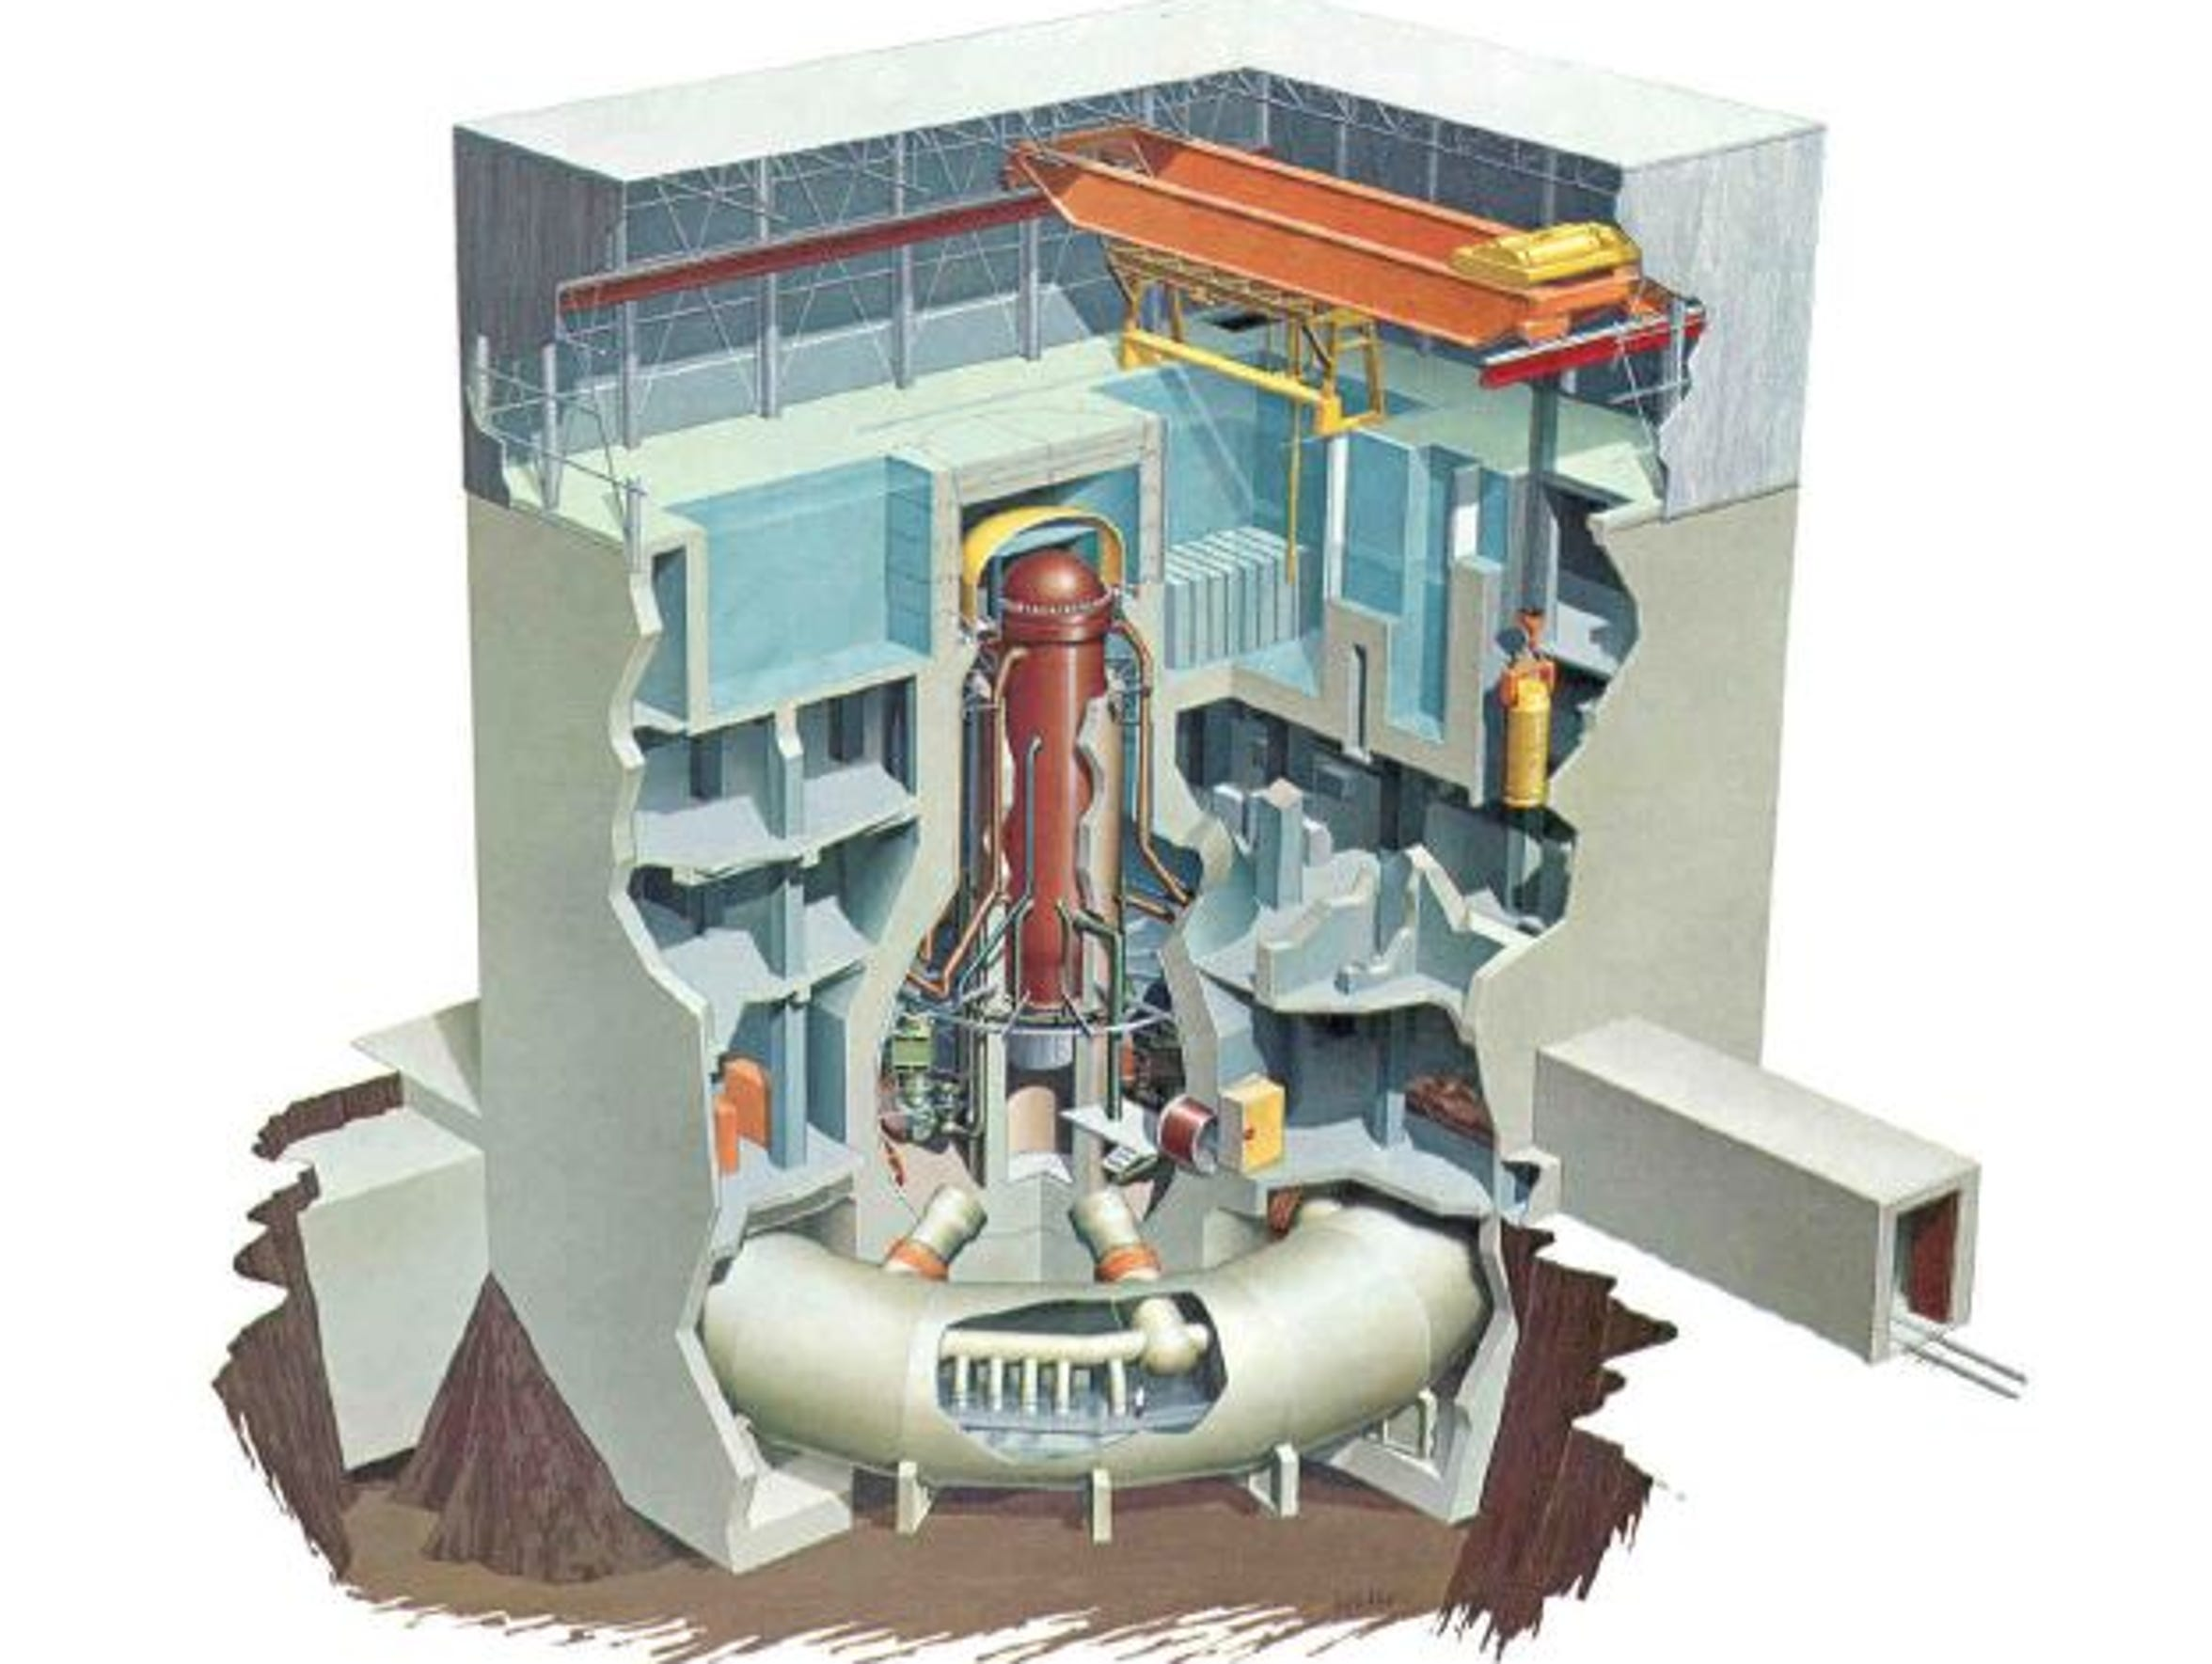 A Mark 1 reactor containment building, like the one